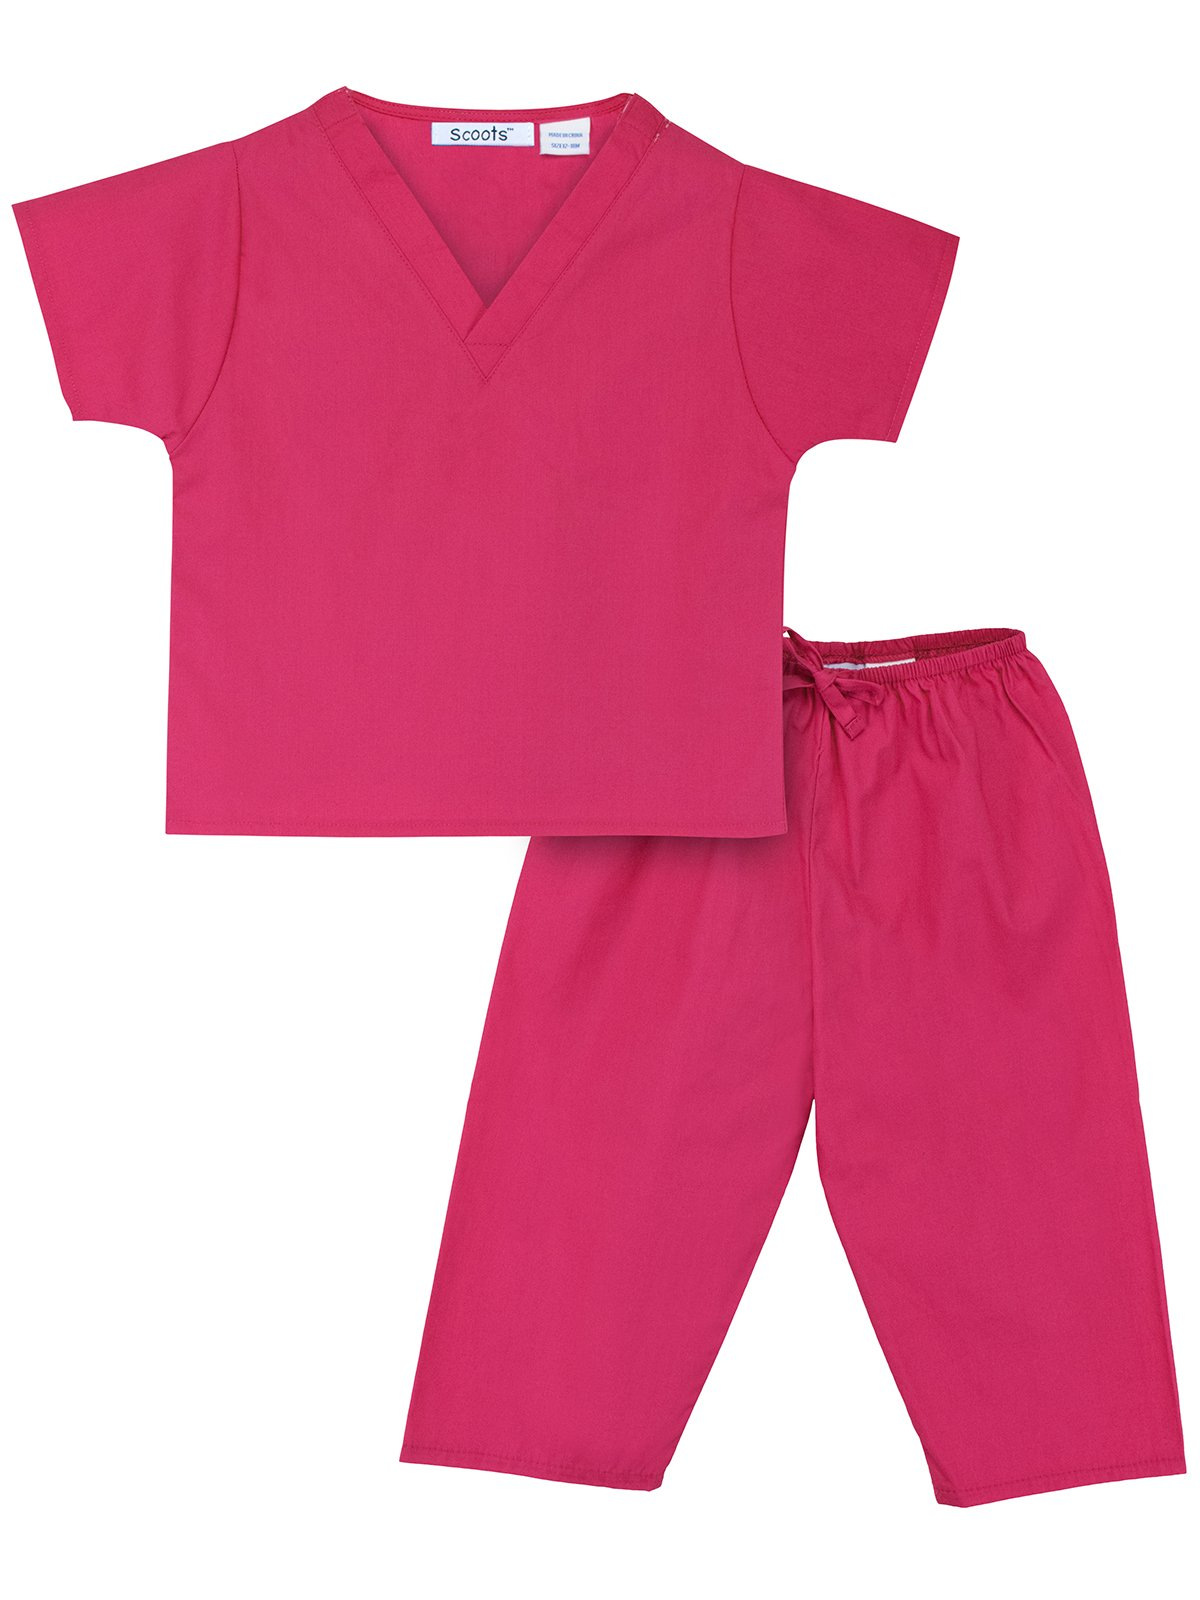 Scoots Toddler Scrubs Size 3T, Pink